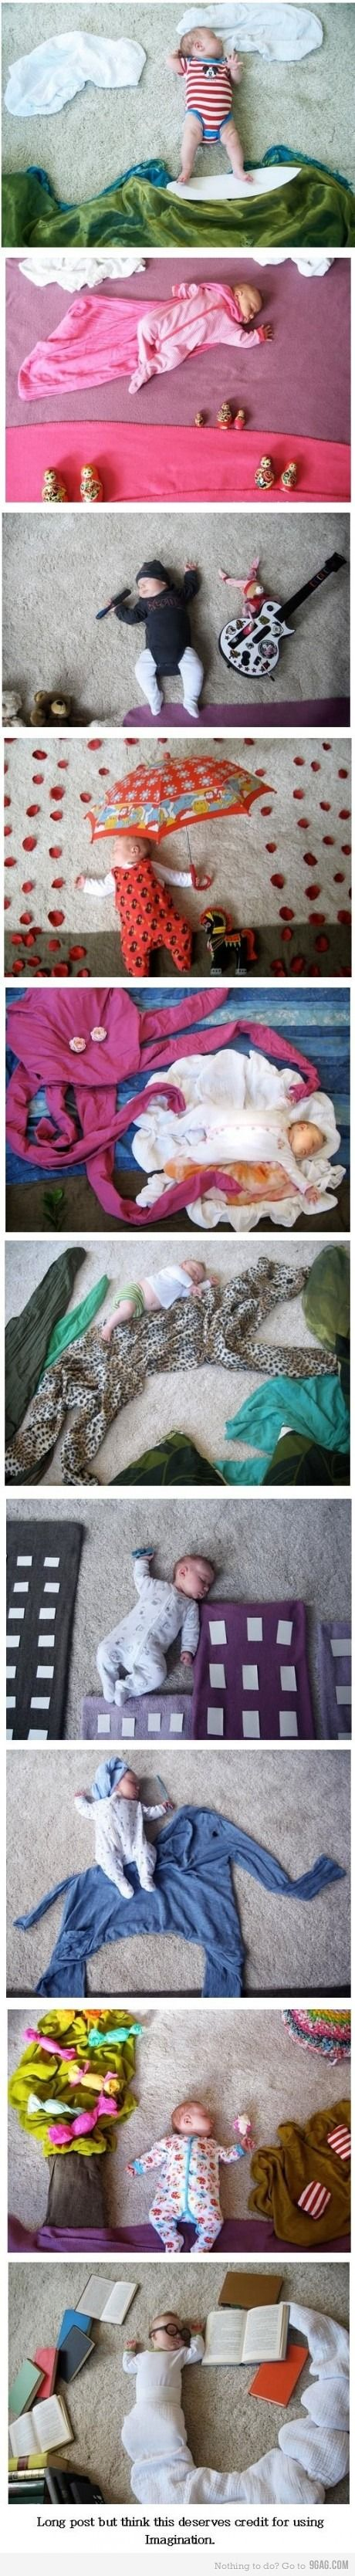 so cute baby: Babies, Baby Pics, Photo Ideas, Sleeping Babies, Baby Pictures, Cute Babies, Baby Photos, Picture Ideas, Kid